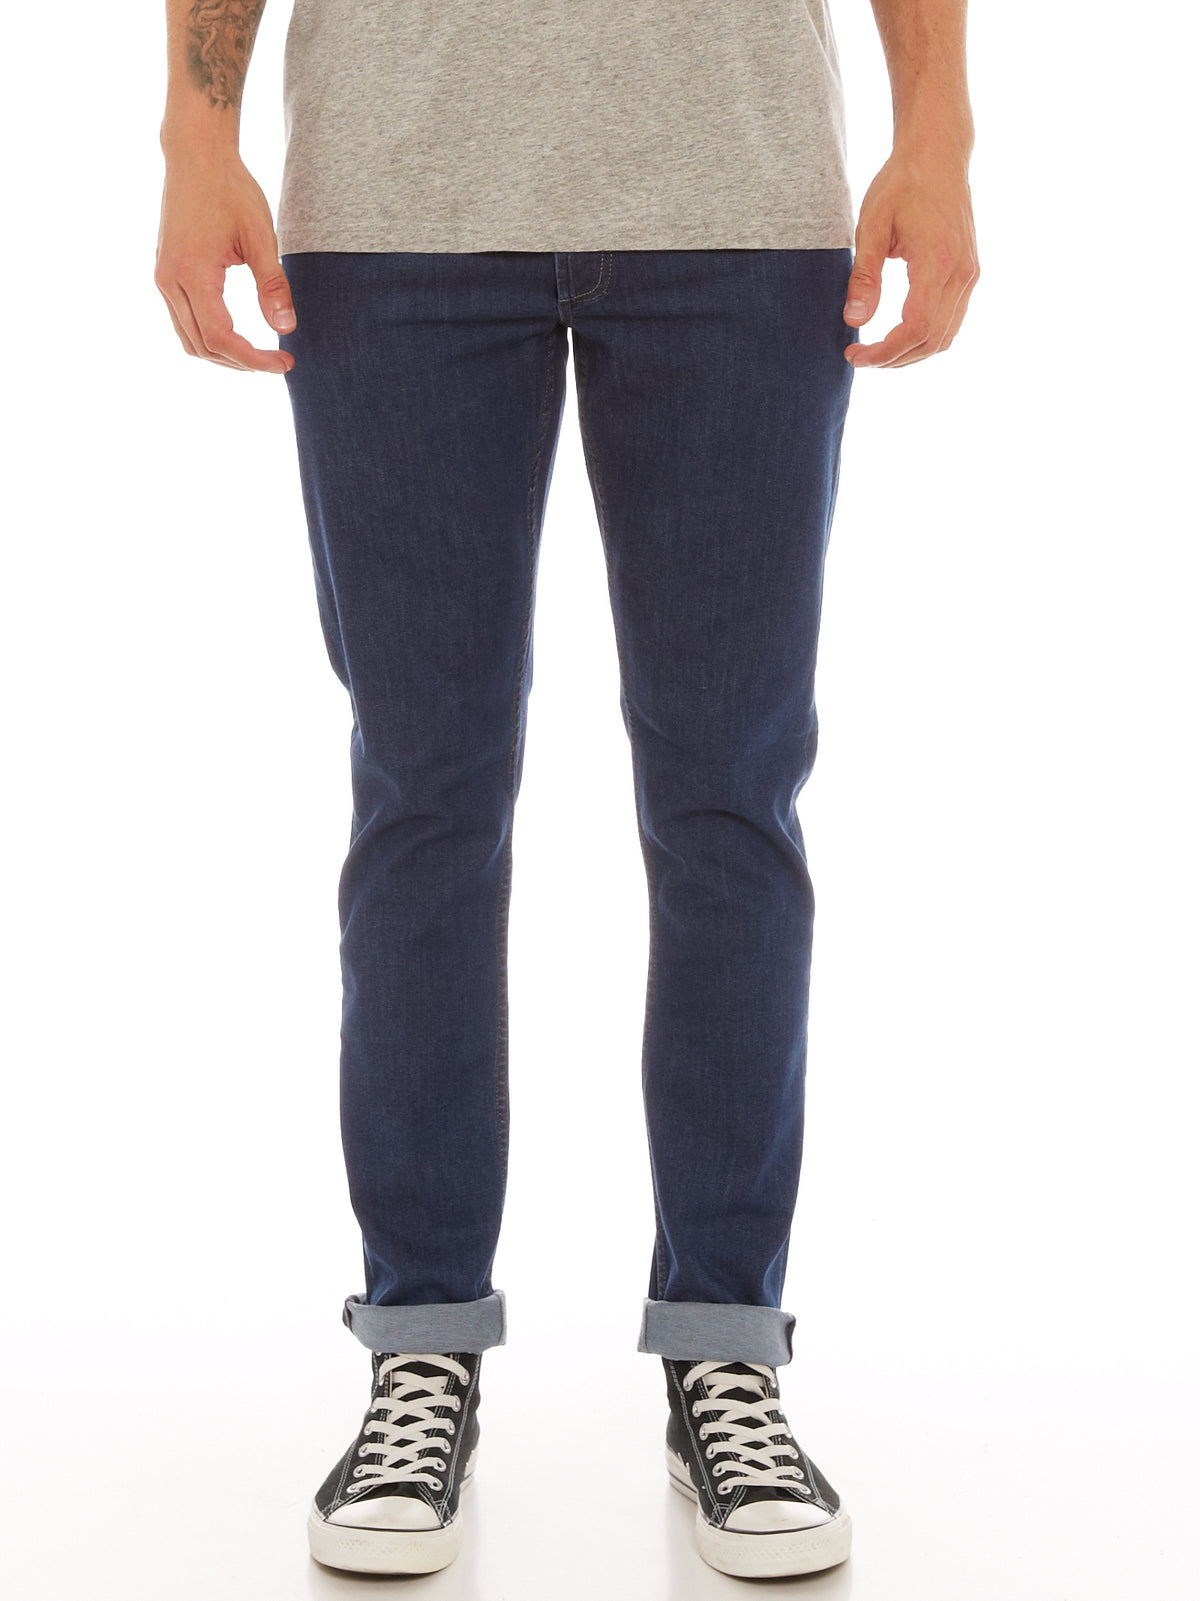 Razor Slim Straight Jeans in ICF Blue Denim